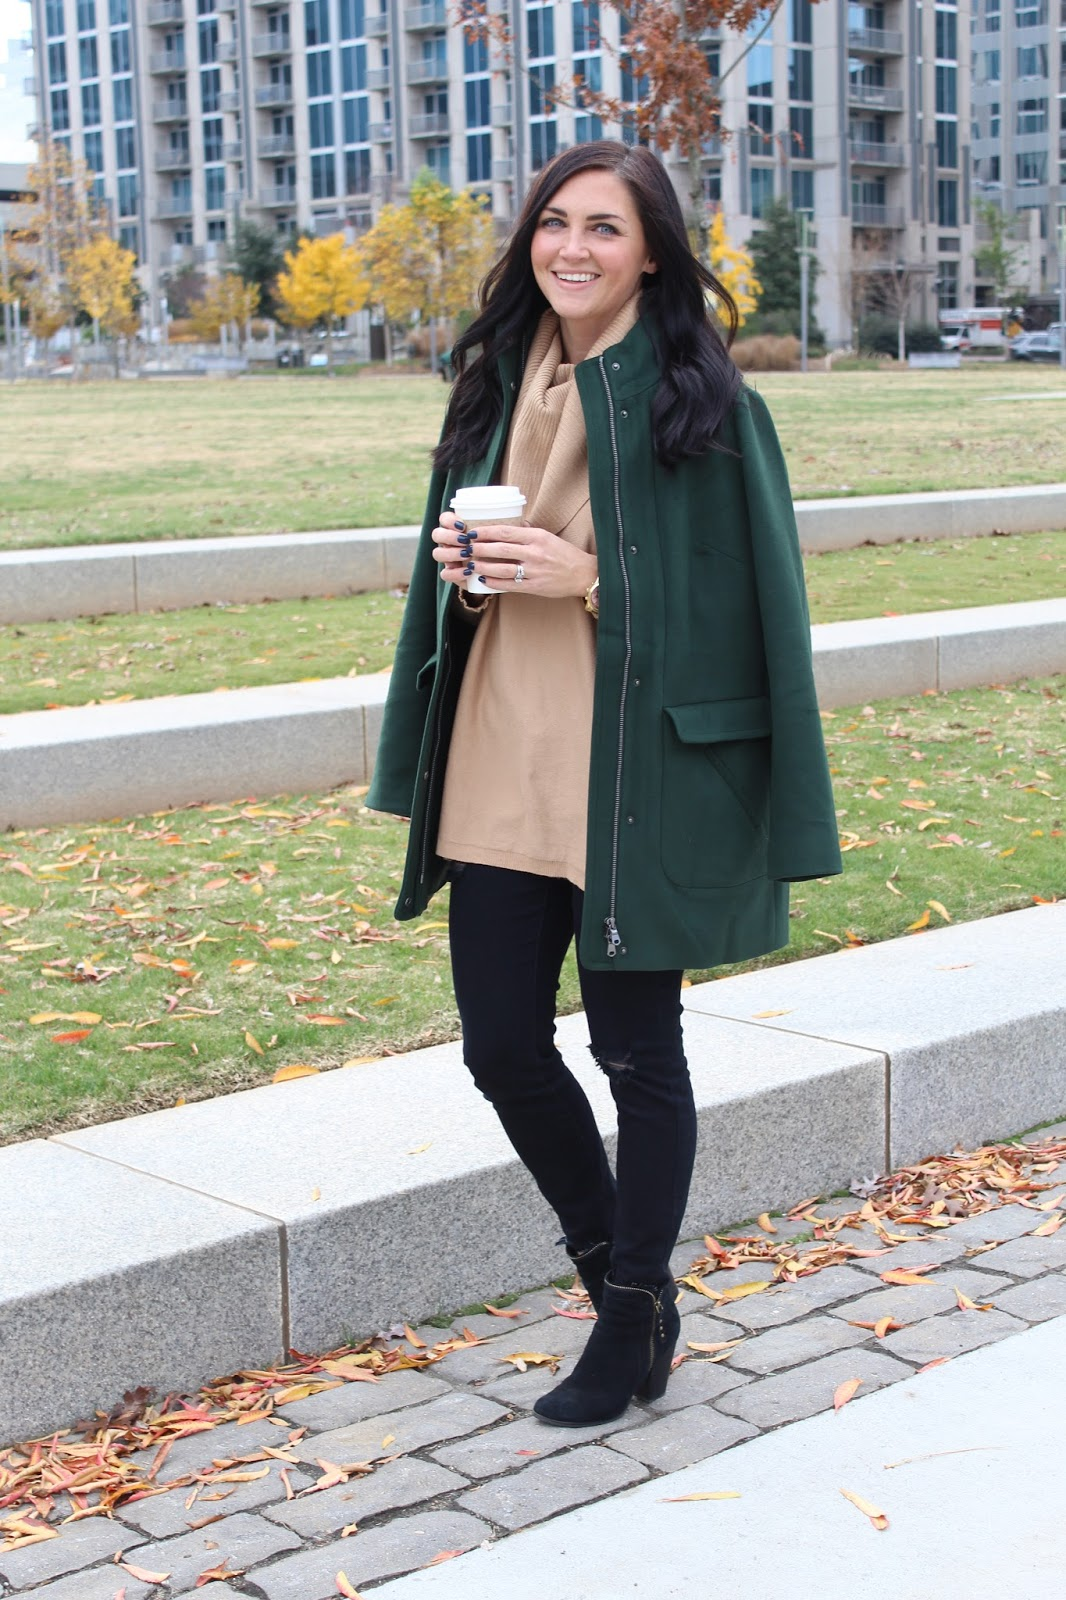 J Jill Hunter green coat | Cowl Neck Nordstrom Sweater | Distressed Black Denim | Charlotte, NC